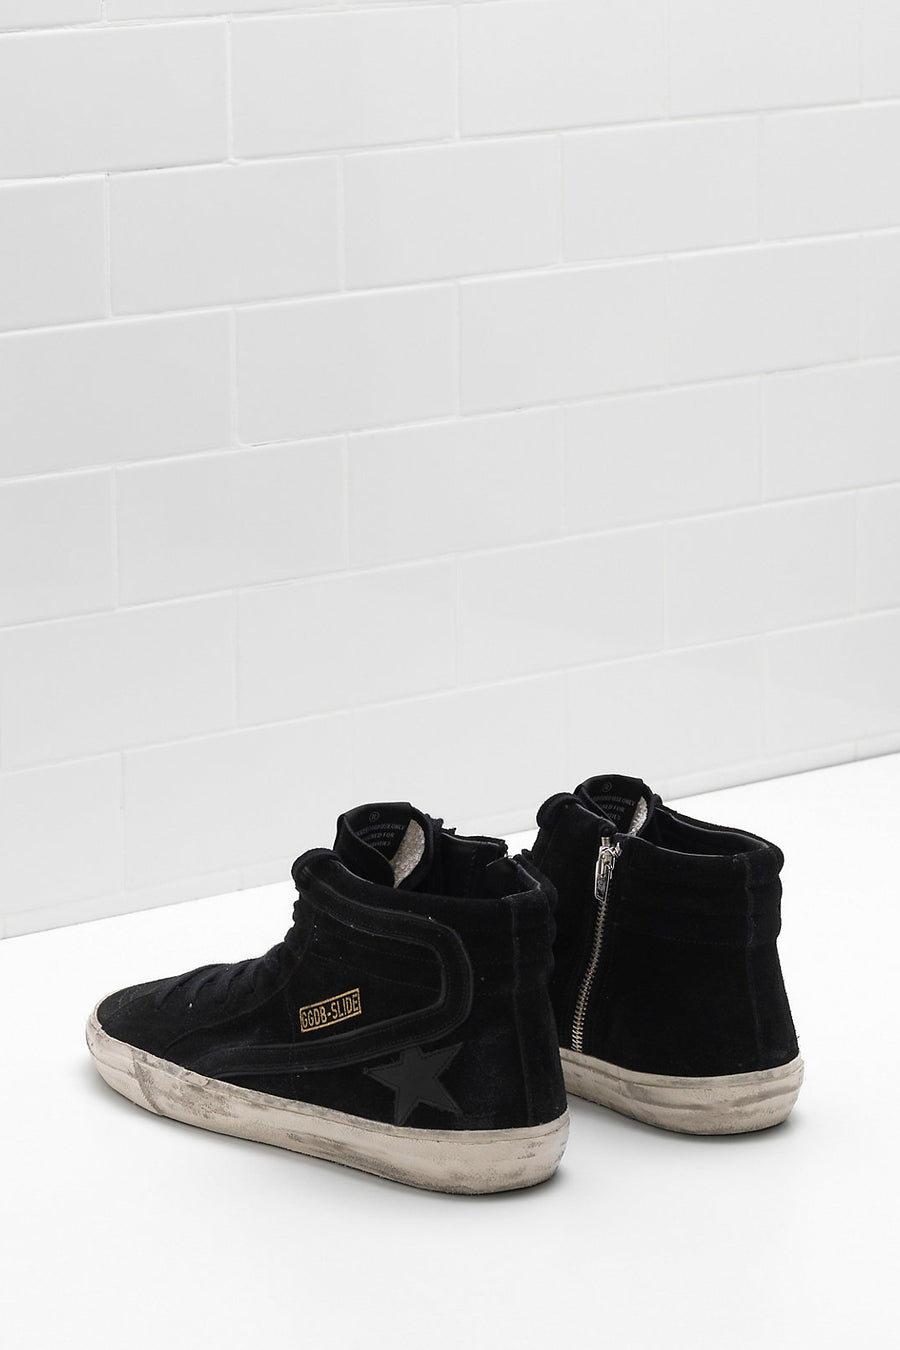 Slide Sneakers - Black Suede - Pavilion